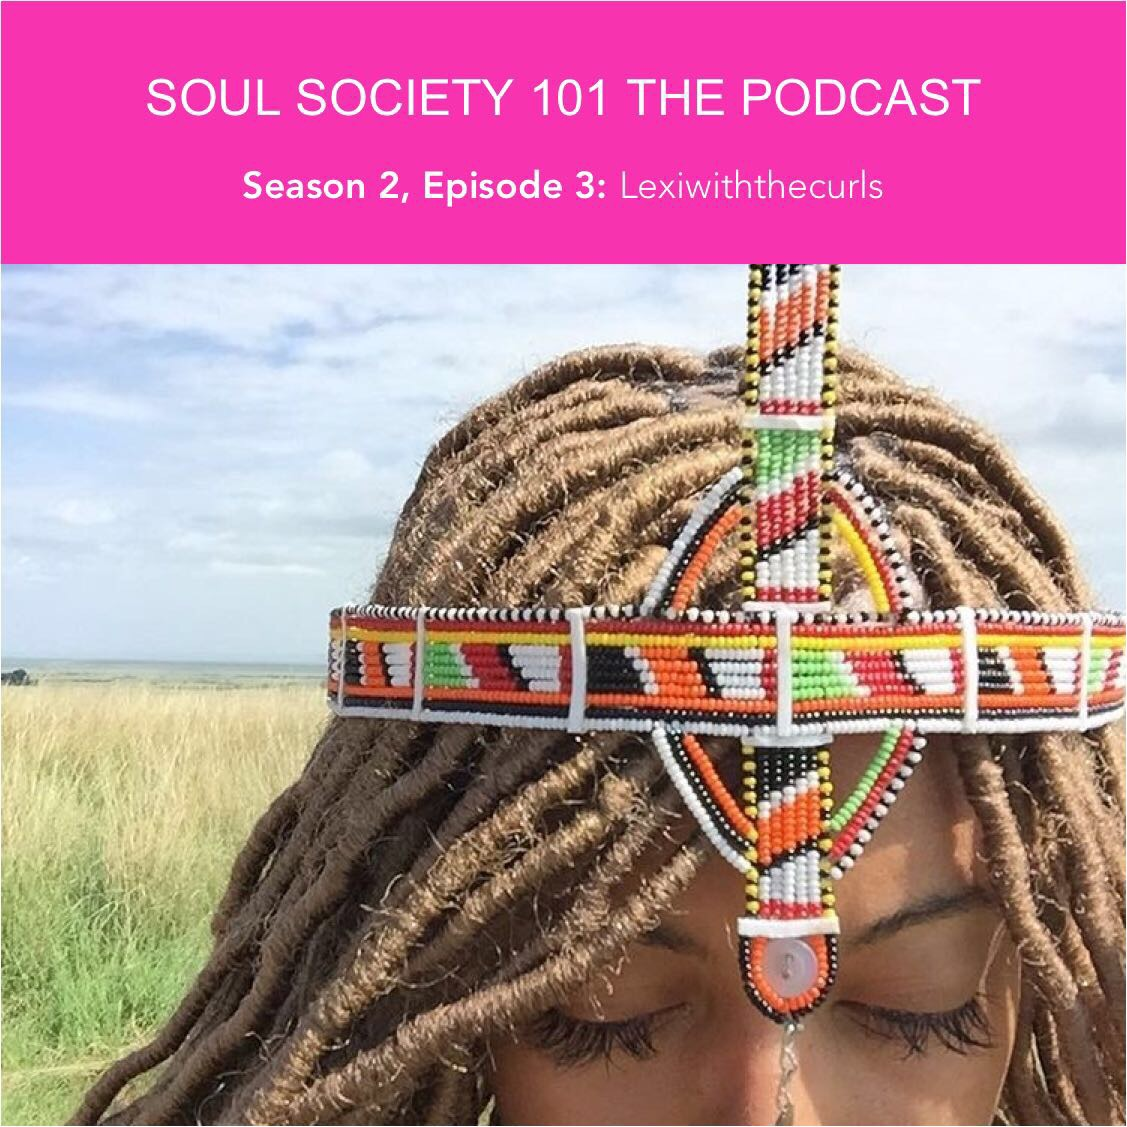 I'm a guest on the Soul Society podcast!